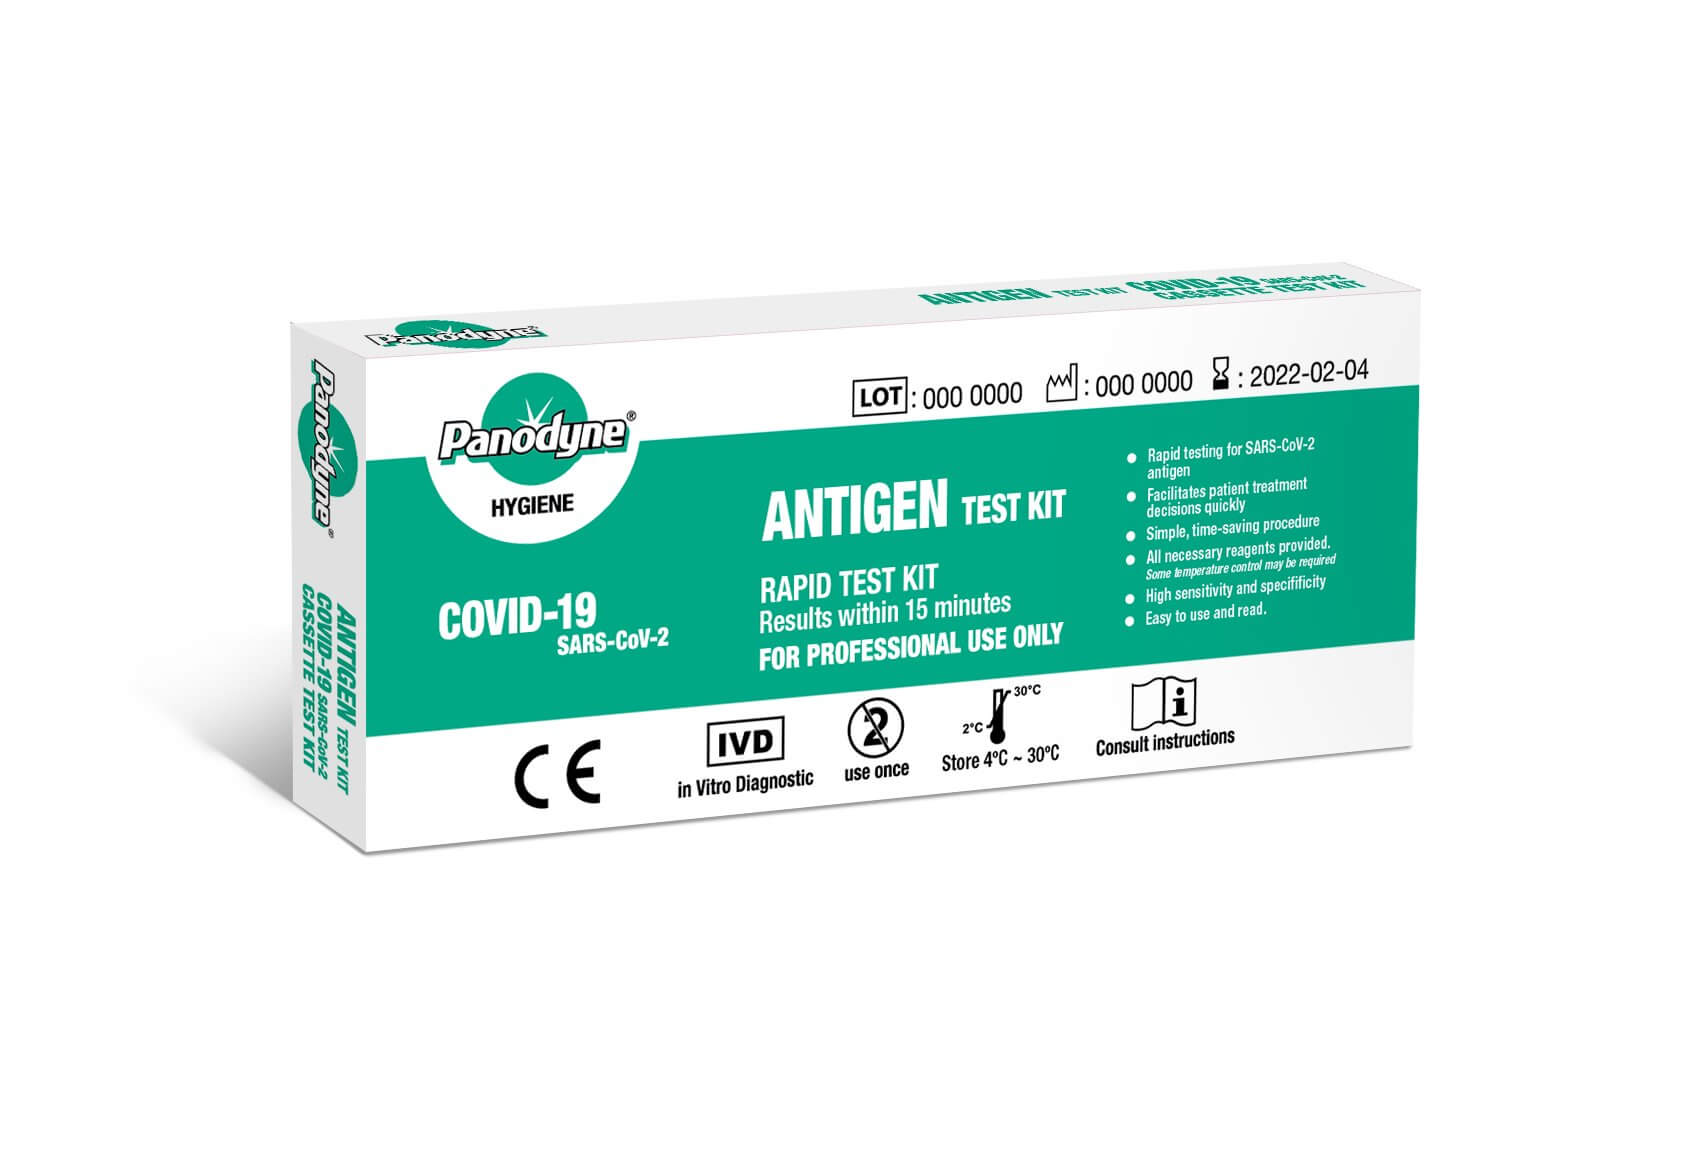 Panodyne Covid-19 Rapid Antigen Test Kit (BOX OF 24 TESTS)